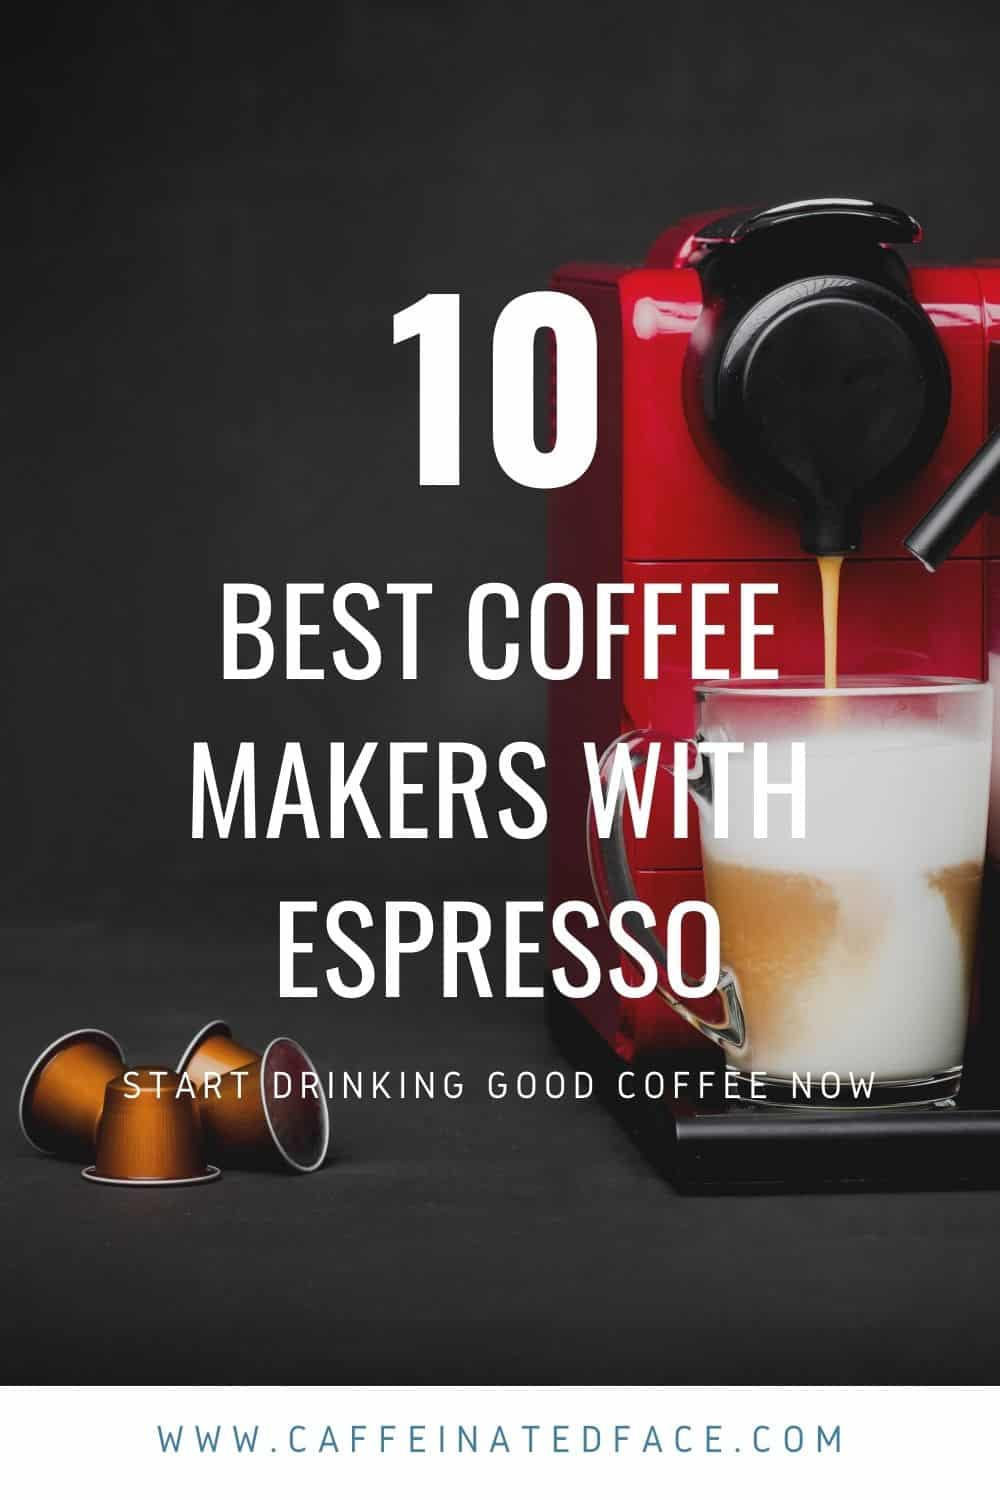 BEST COFFEE MAKER WITH ESPRESSO (1)